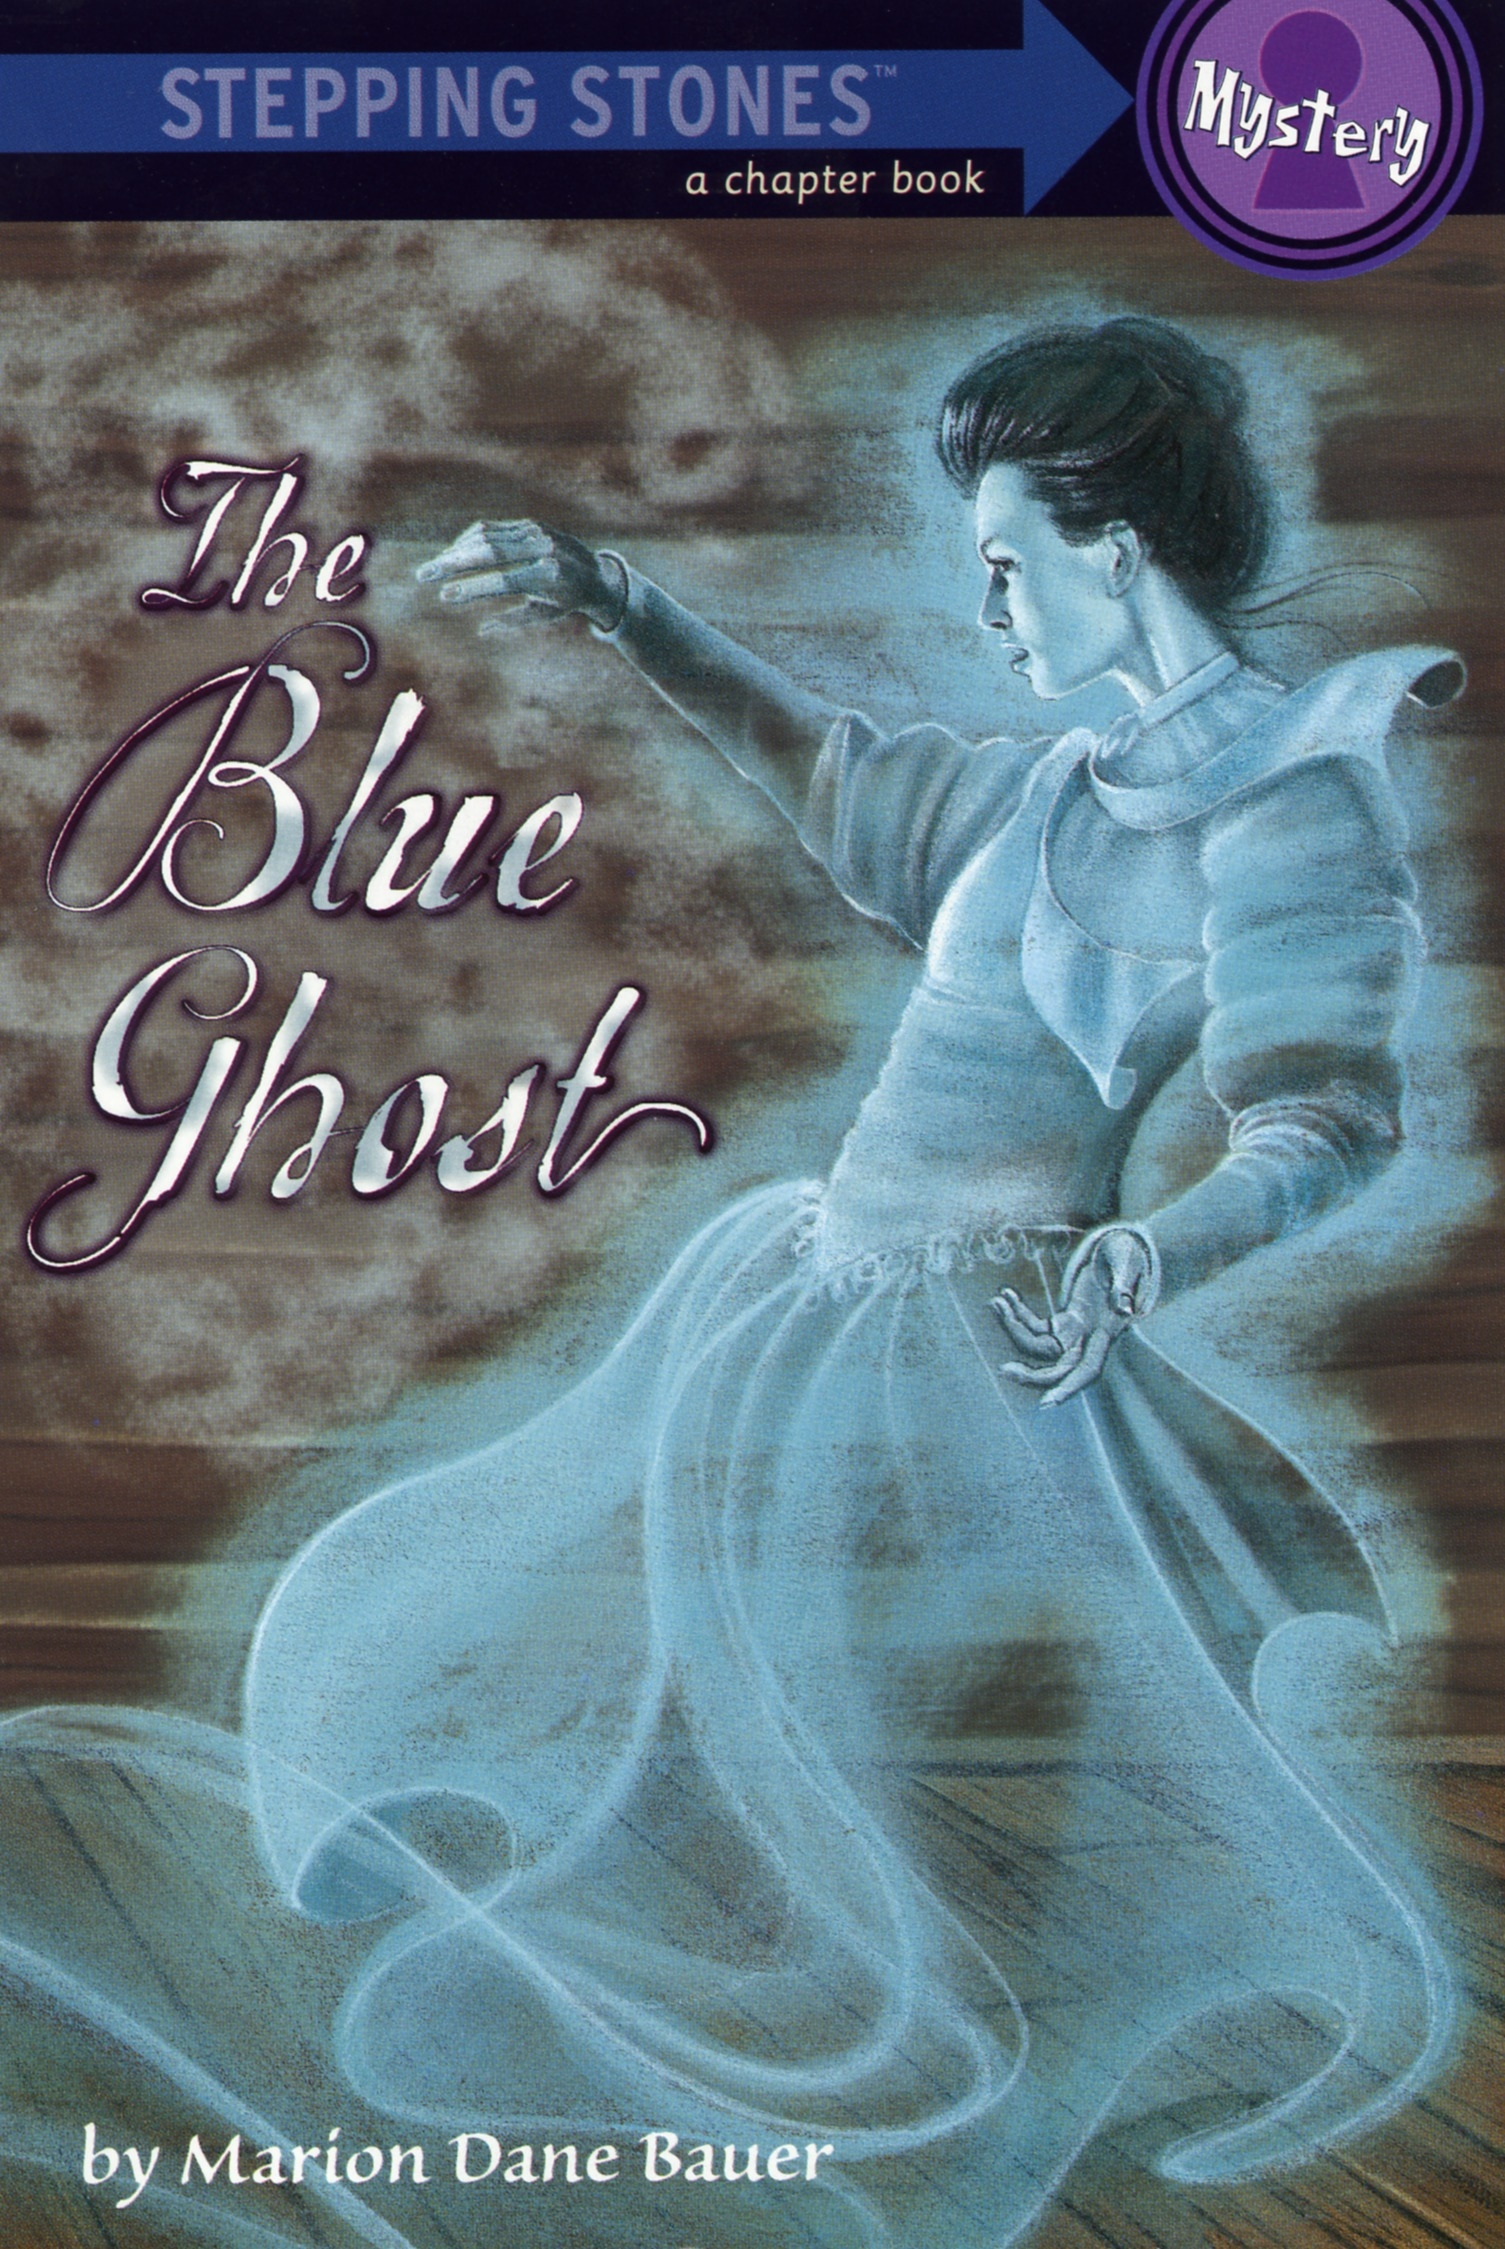 Stepping Stones: The Blue Ghost